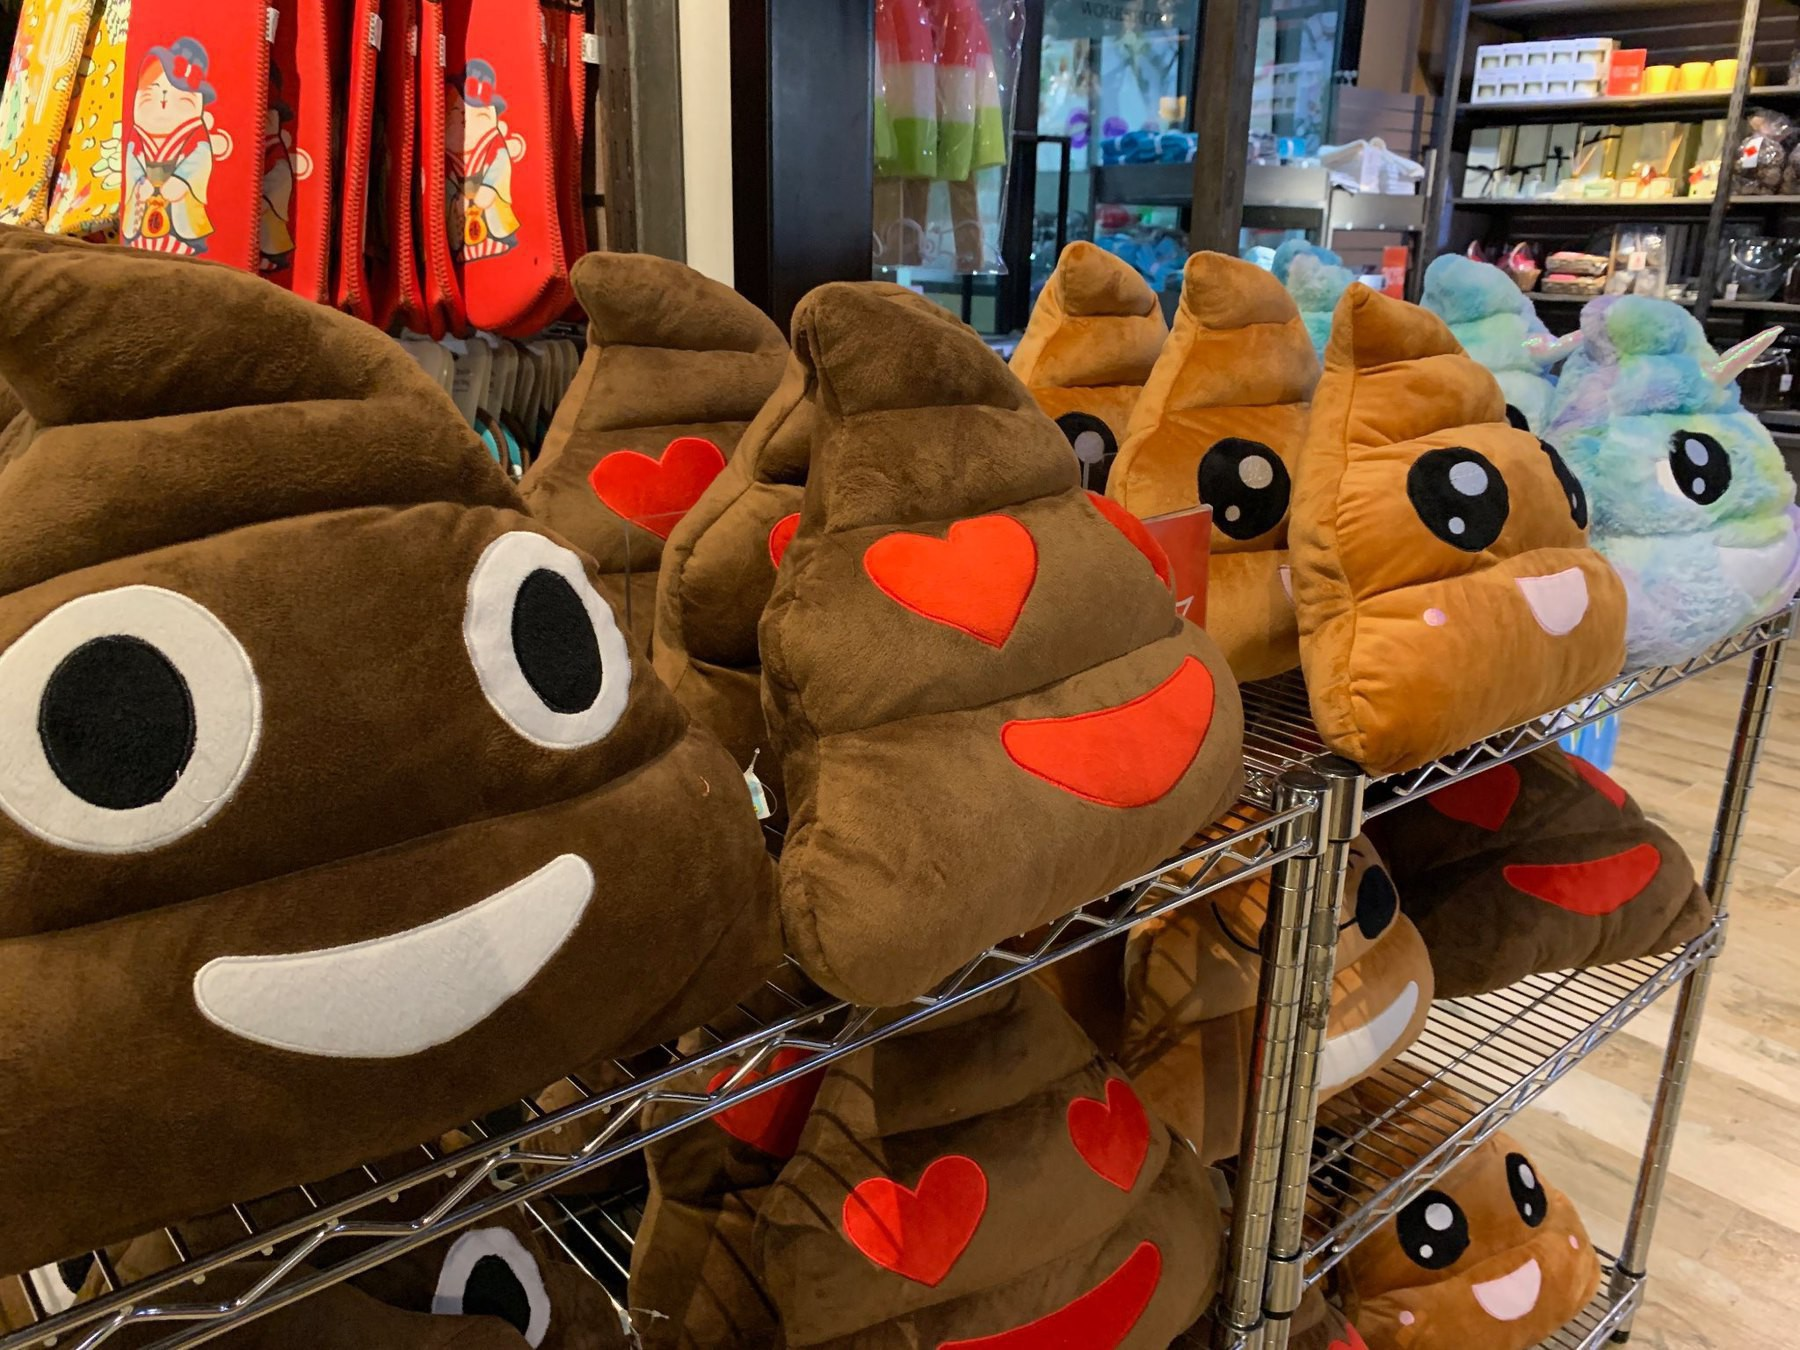 Poo shaped pillows